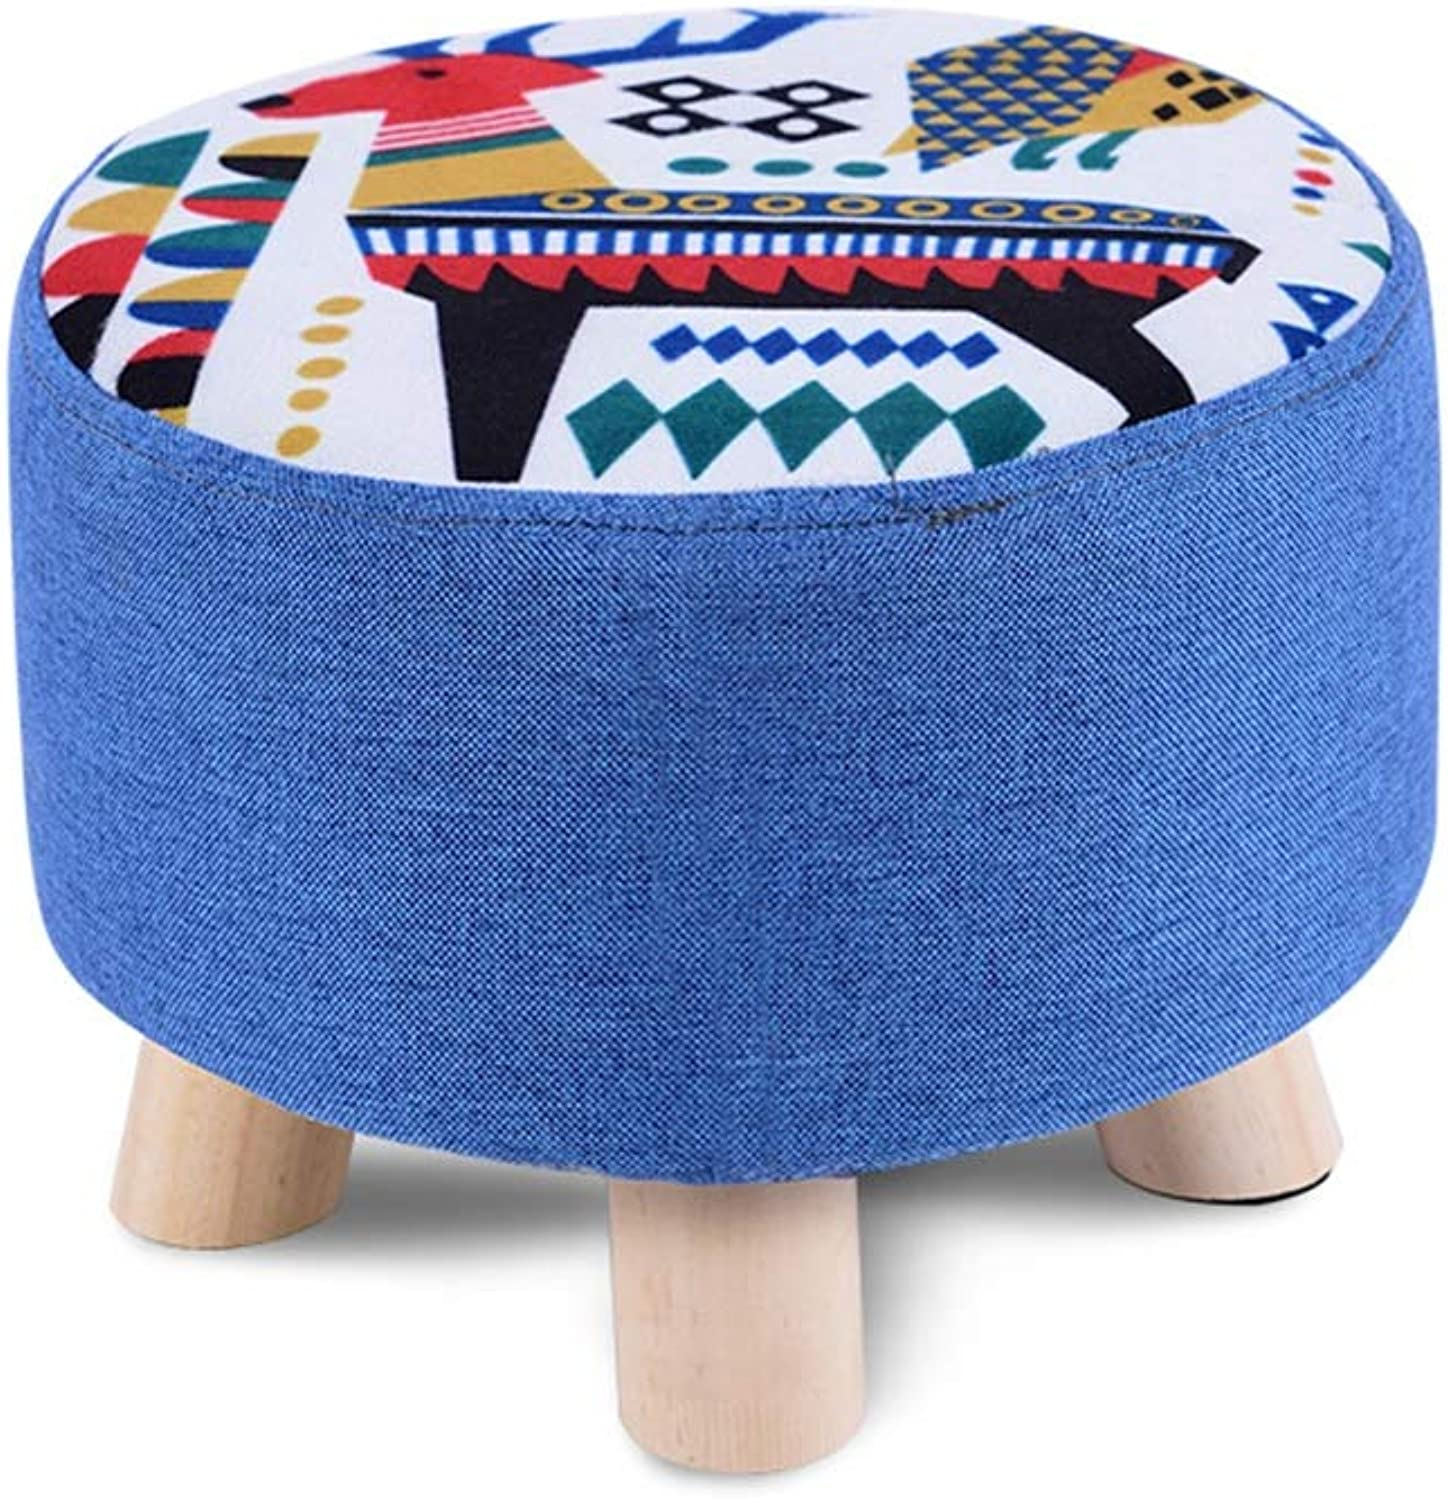 YQQ Makeup Stool, Round Stool Sofa Stool Change shoes Bench Cloth Wood 28  20CM (color   2)